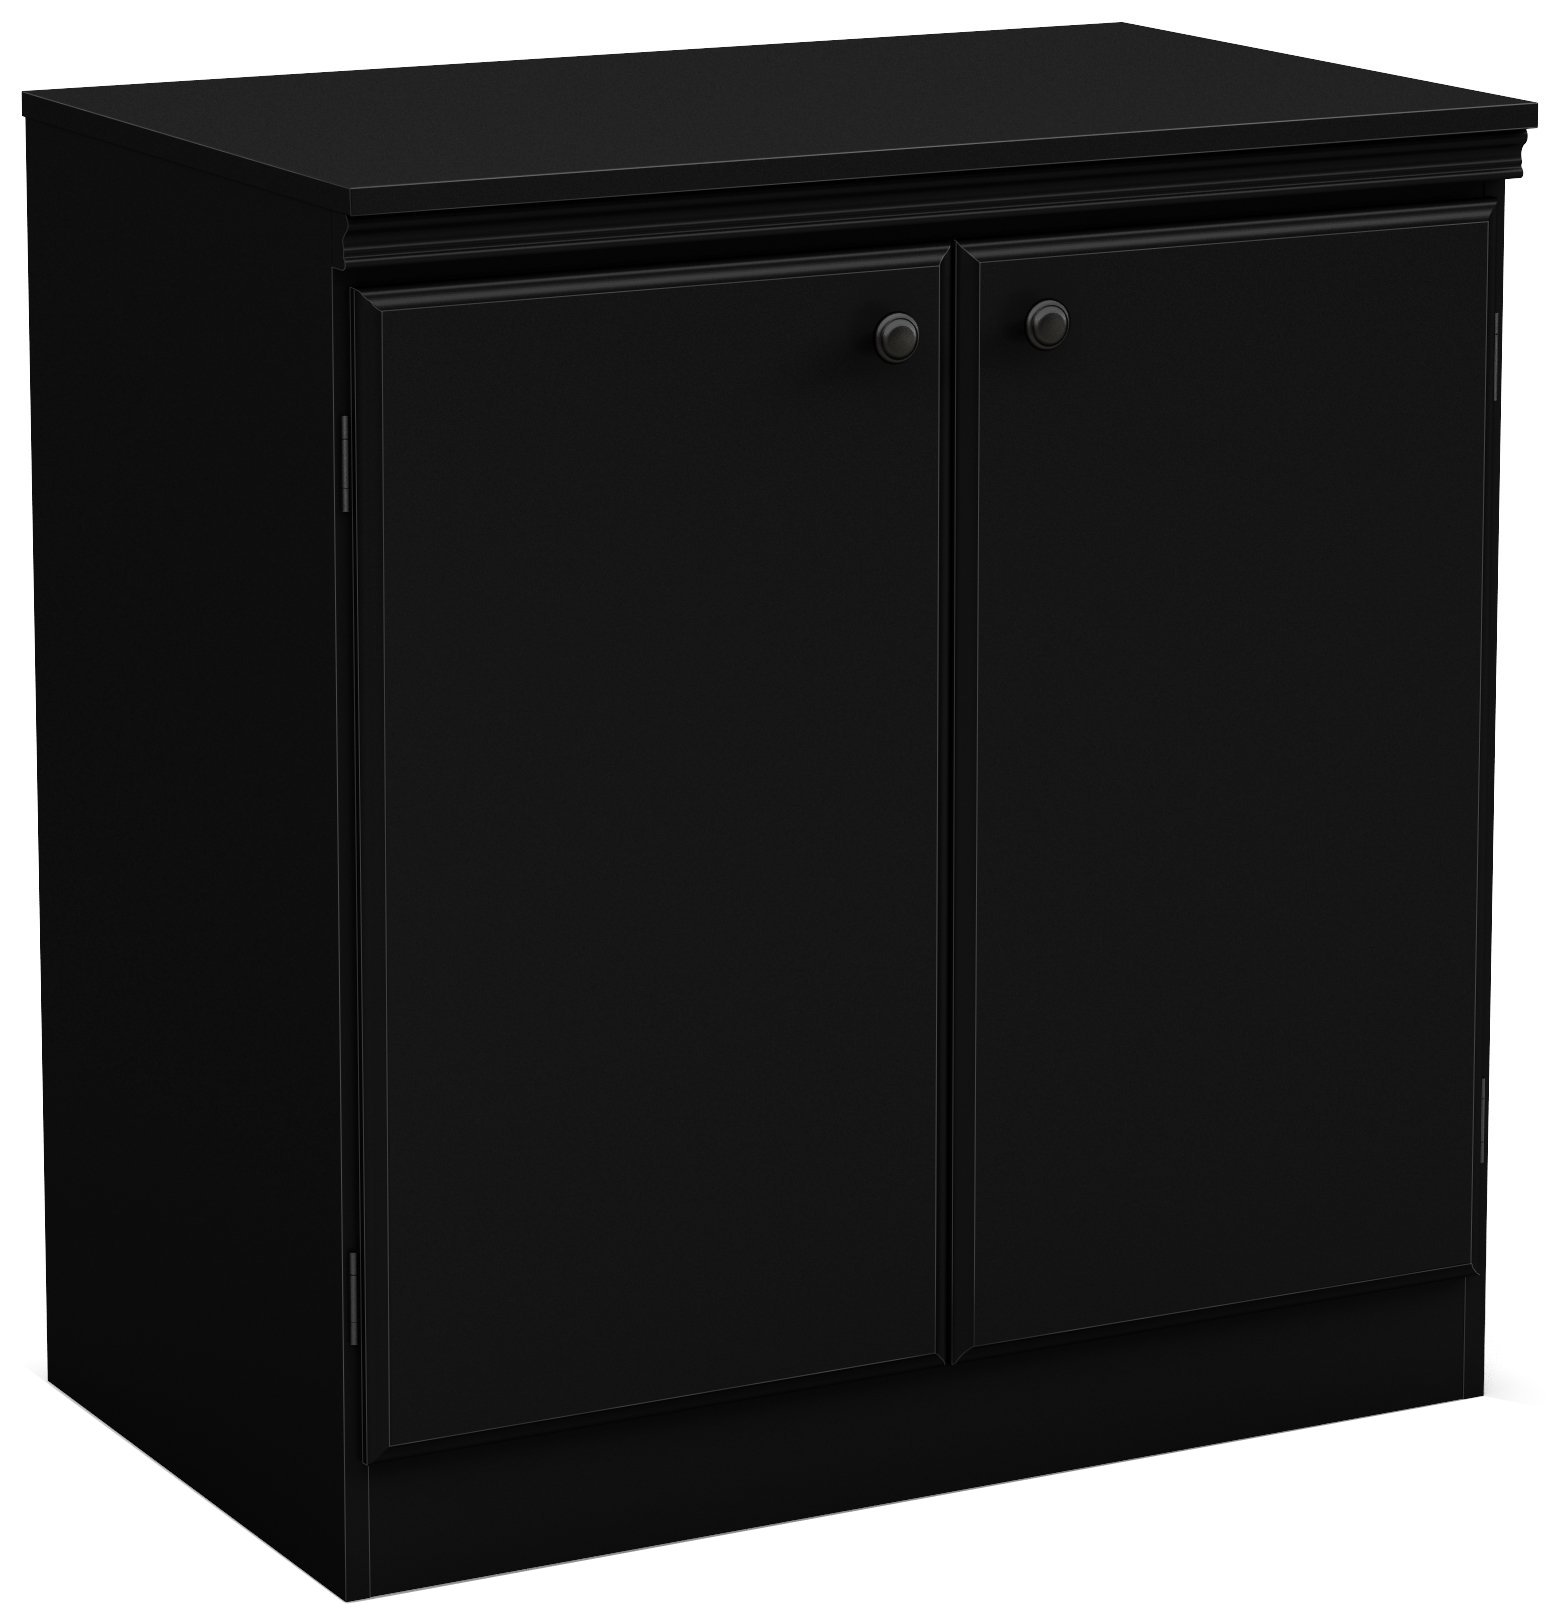 South Shore Small 2-Door Storage Cabinet with Adjustable Shelf, Pure Black by South Shore